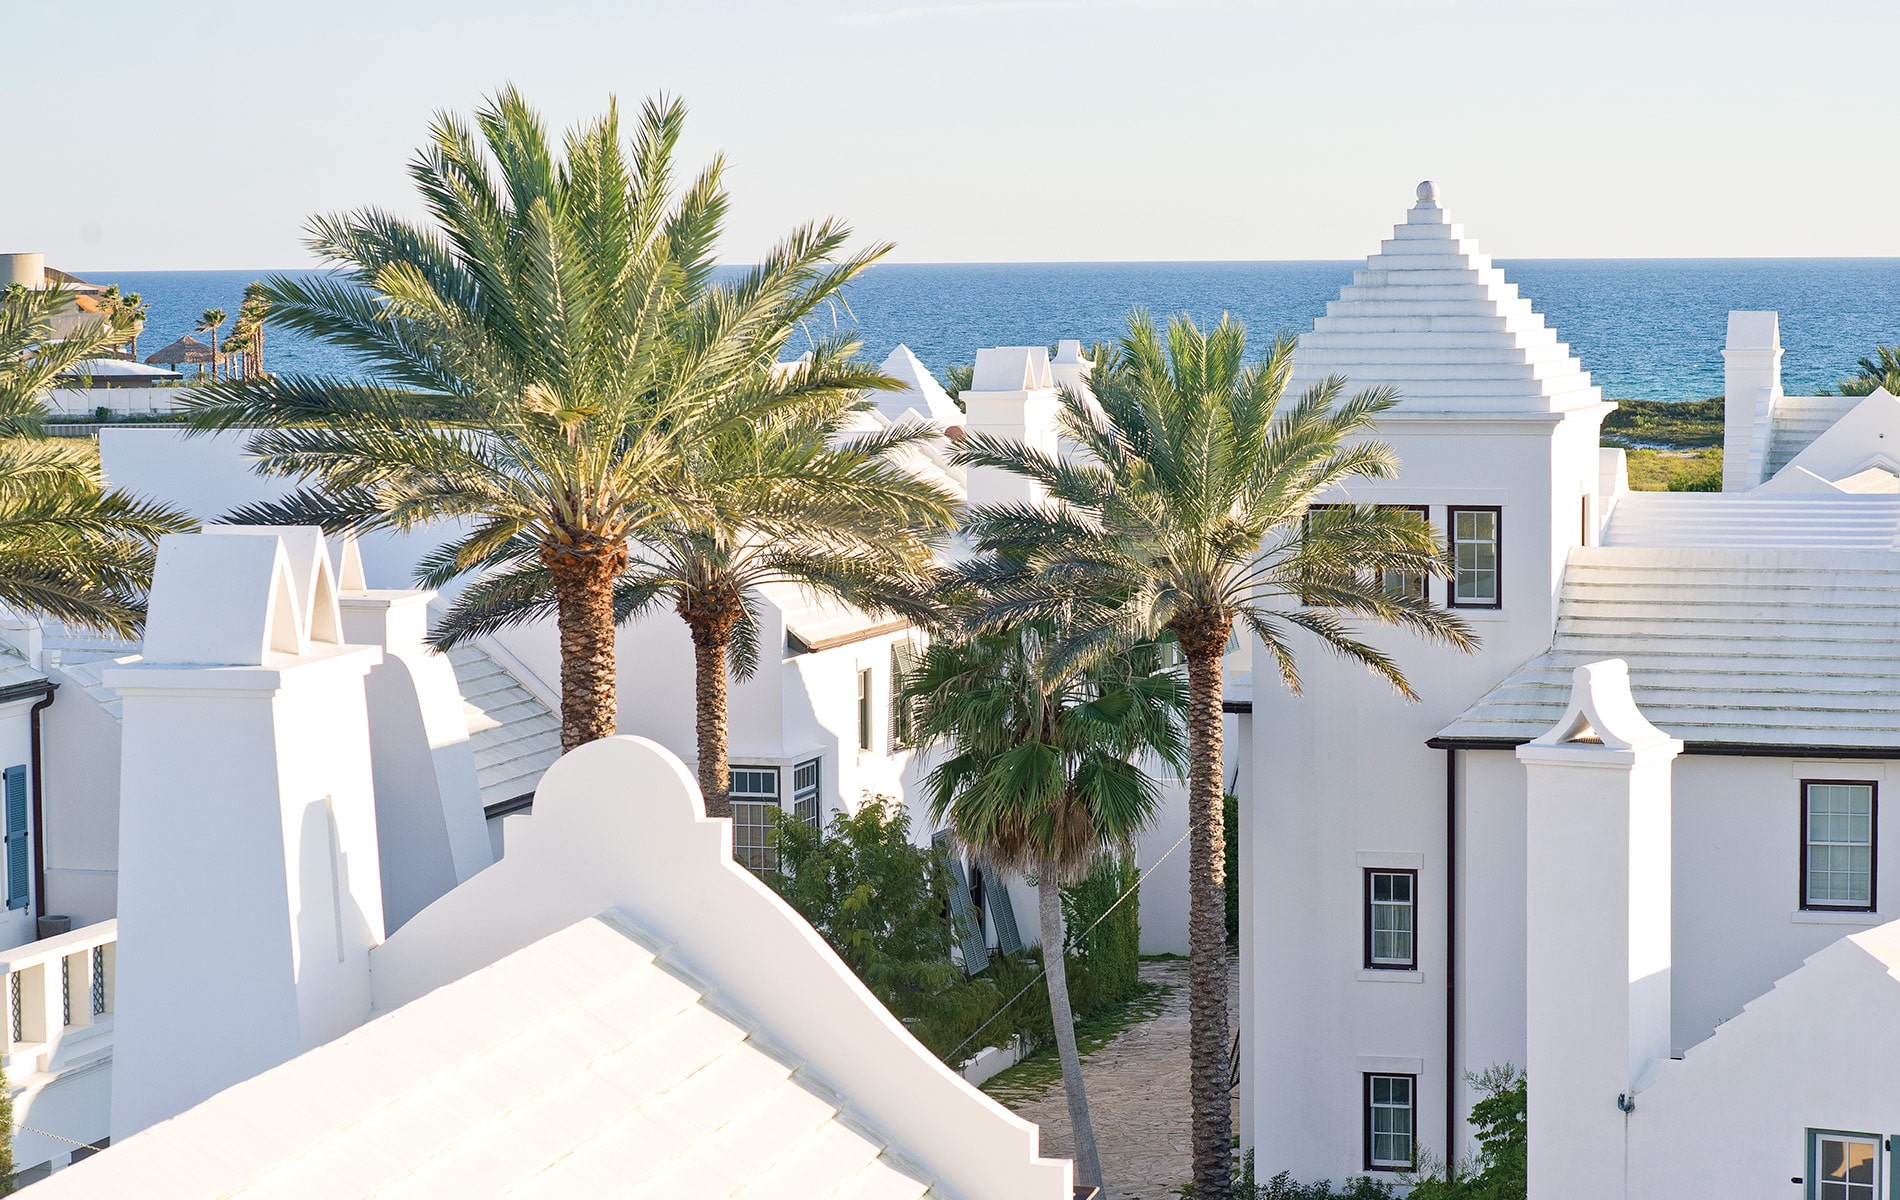 Alys Beach, Florida, is known as one of the most luxurious and exclusive communities along the corridor of Scenic Highway 30-A.